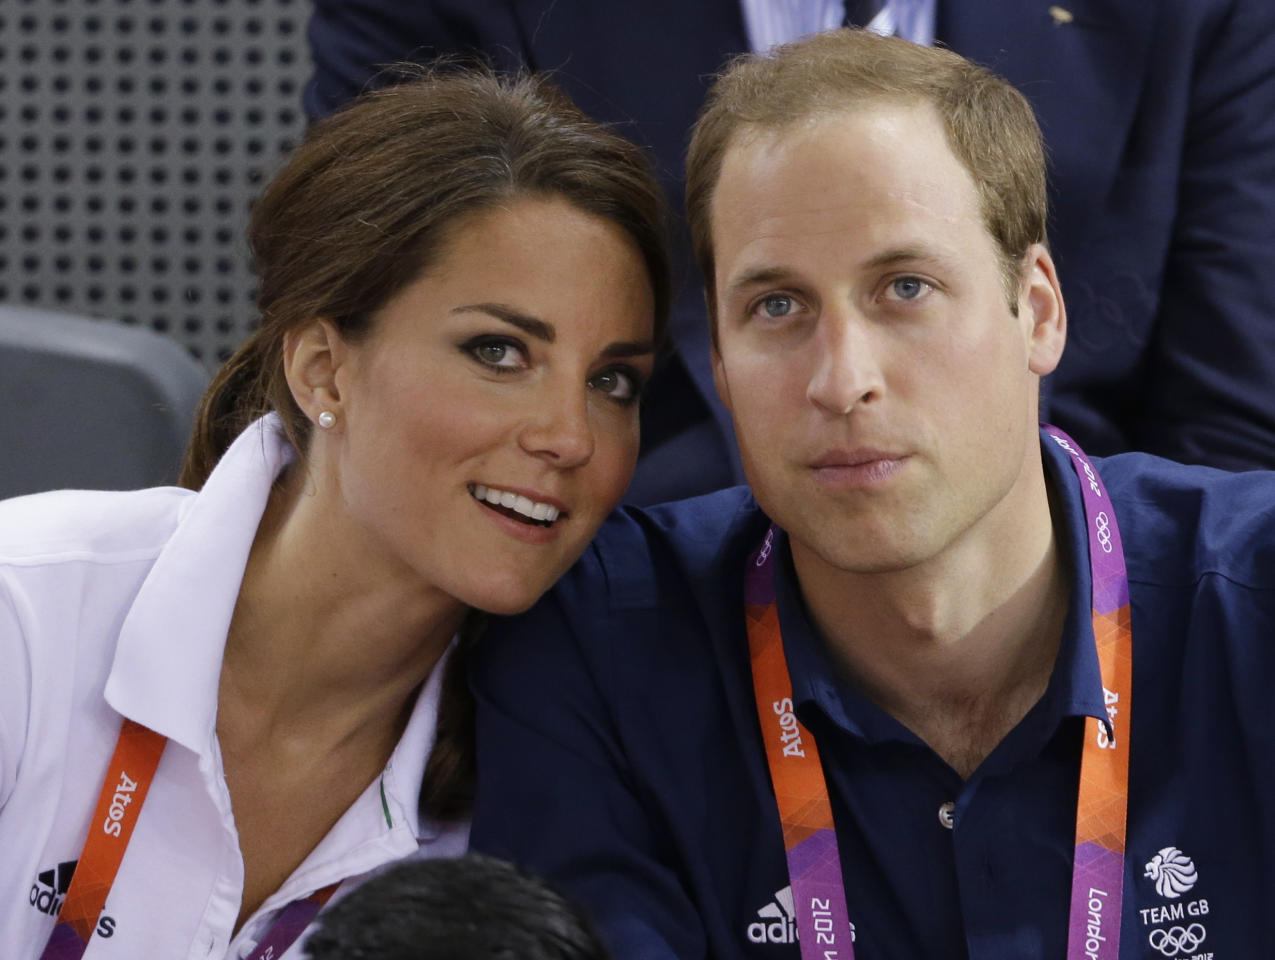 Prince William, right, and wife Kate, Duke and Duchess of Cambridge, watch track cycling at the velodrome during the 2012 Summer Olympics, Thursday, Aug. 2, 2012, in London. (AP Photo/Matt Rourke)